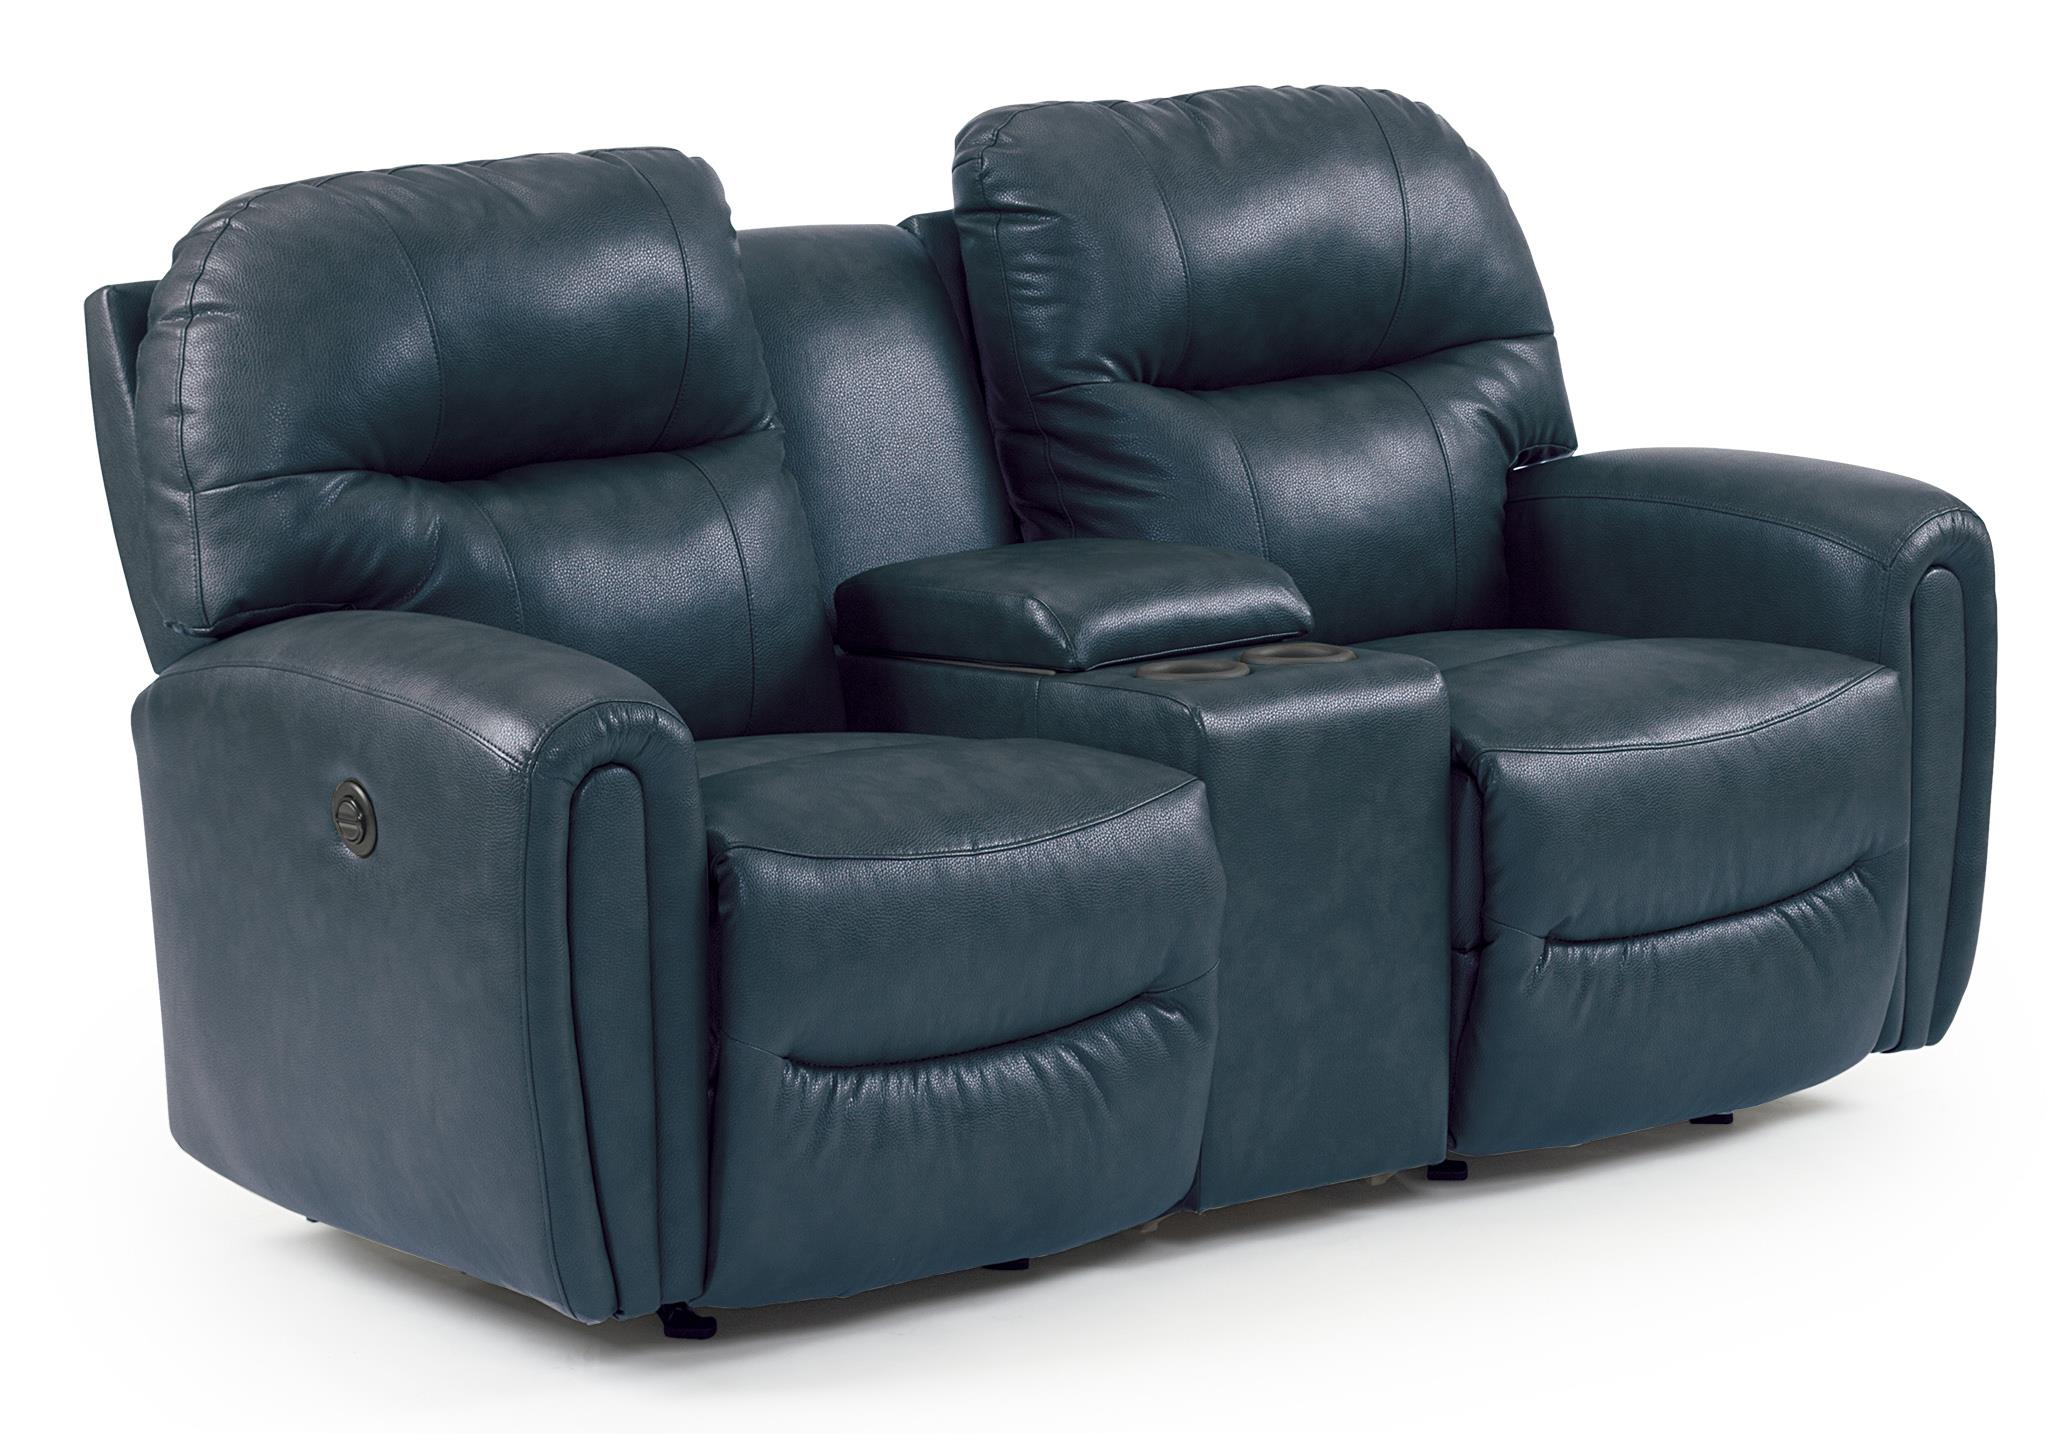 Best Home Furnishings Markson Power Space Saver Console Loveseat - Item Number: L860CQ4